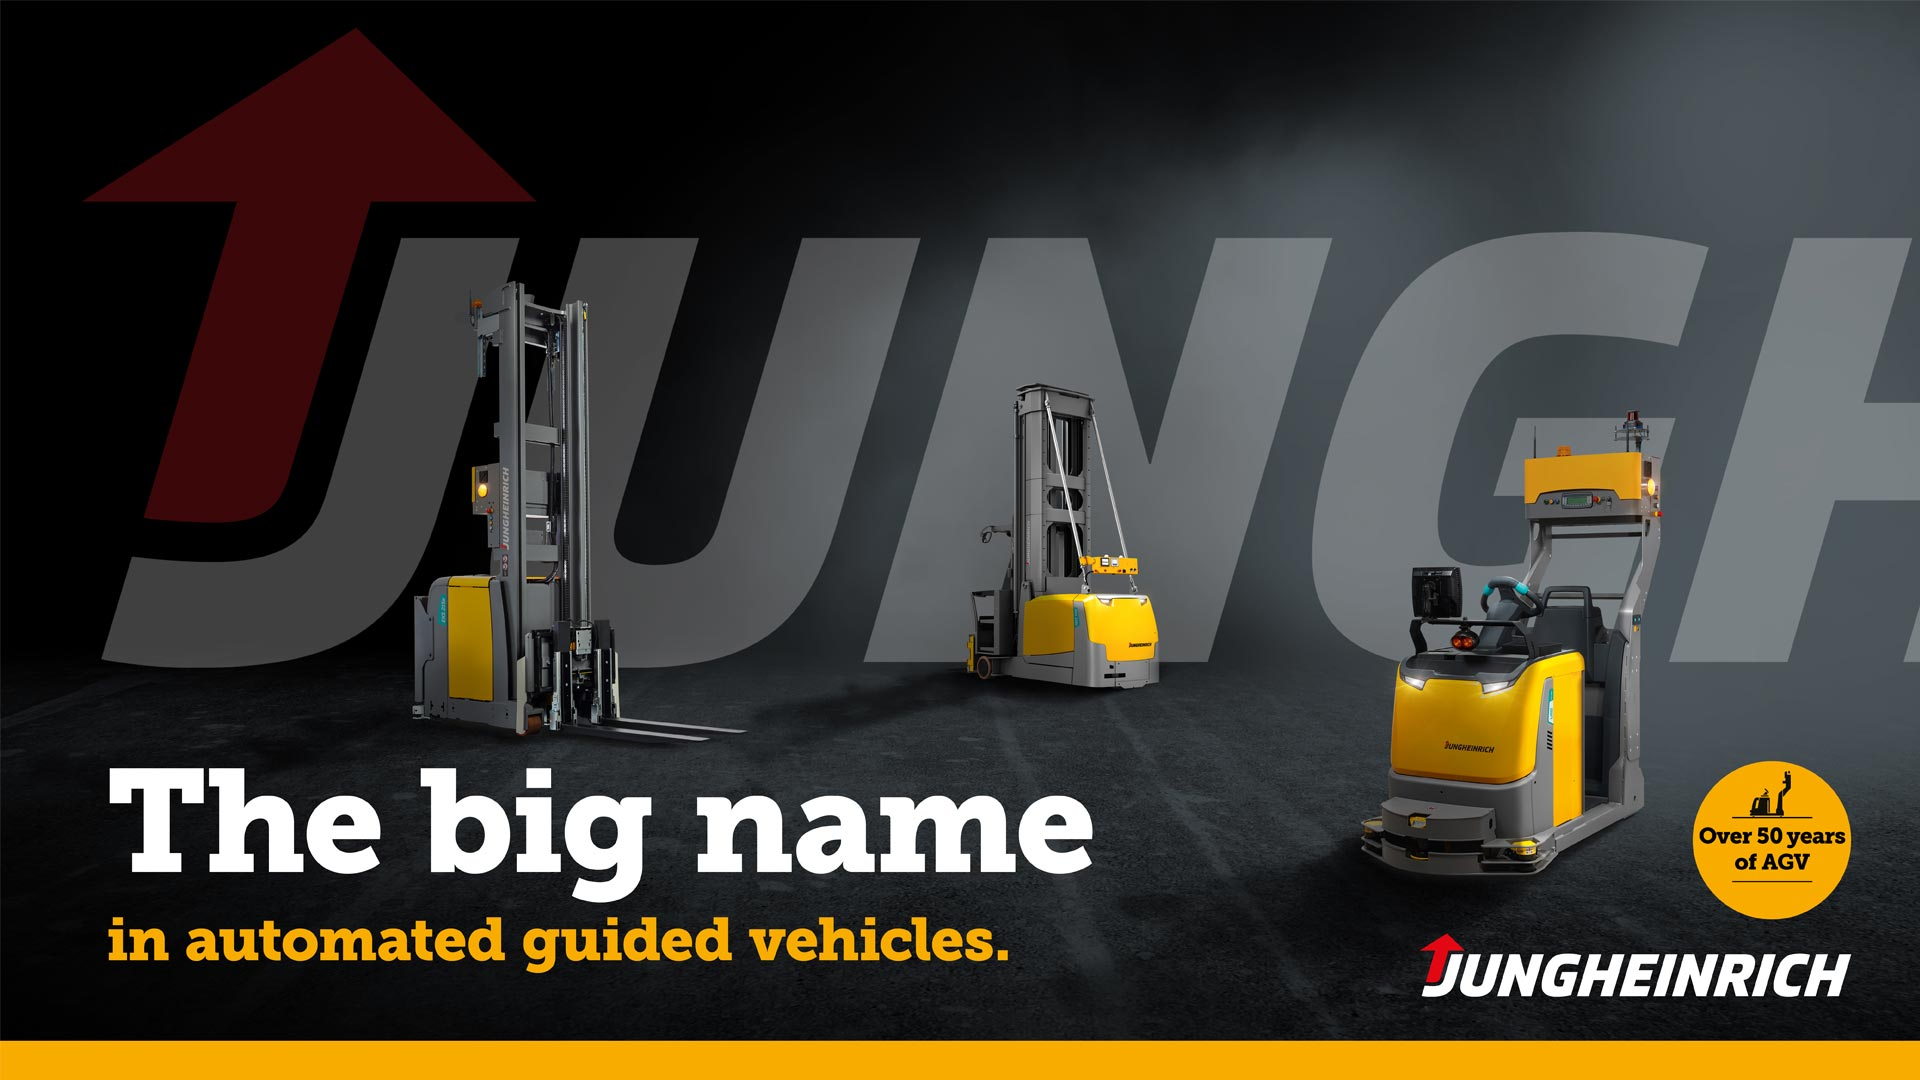 Jungheinrich campaign - The big name in automated guided vehicles